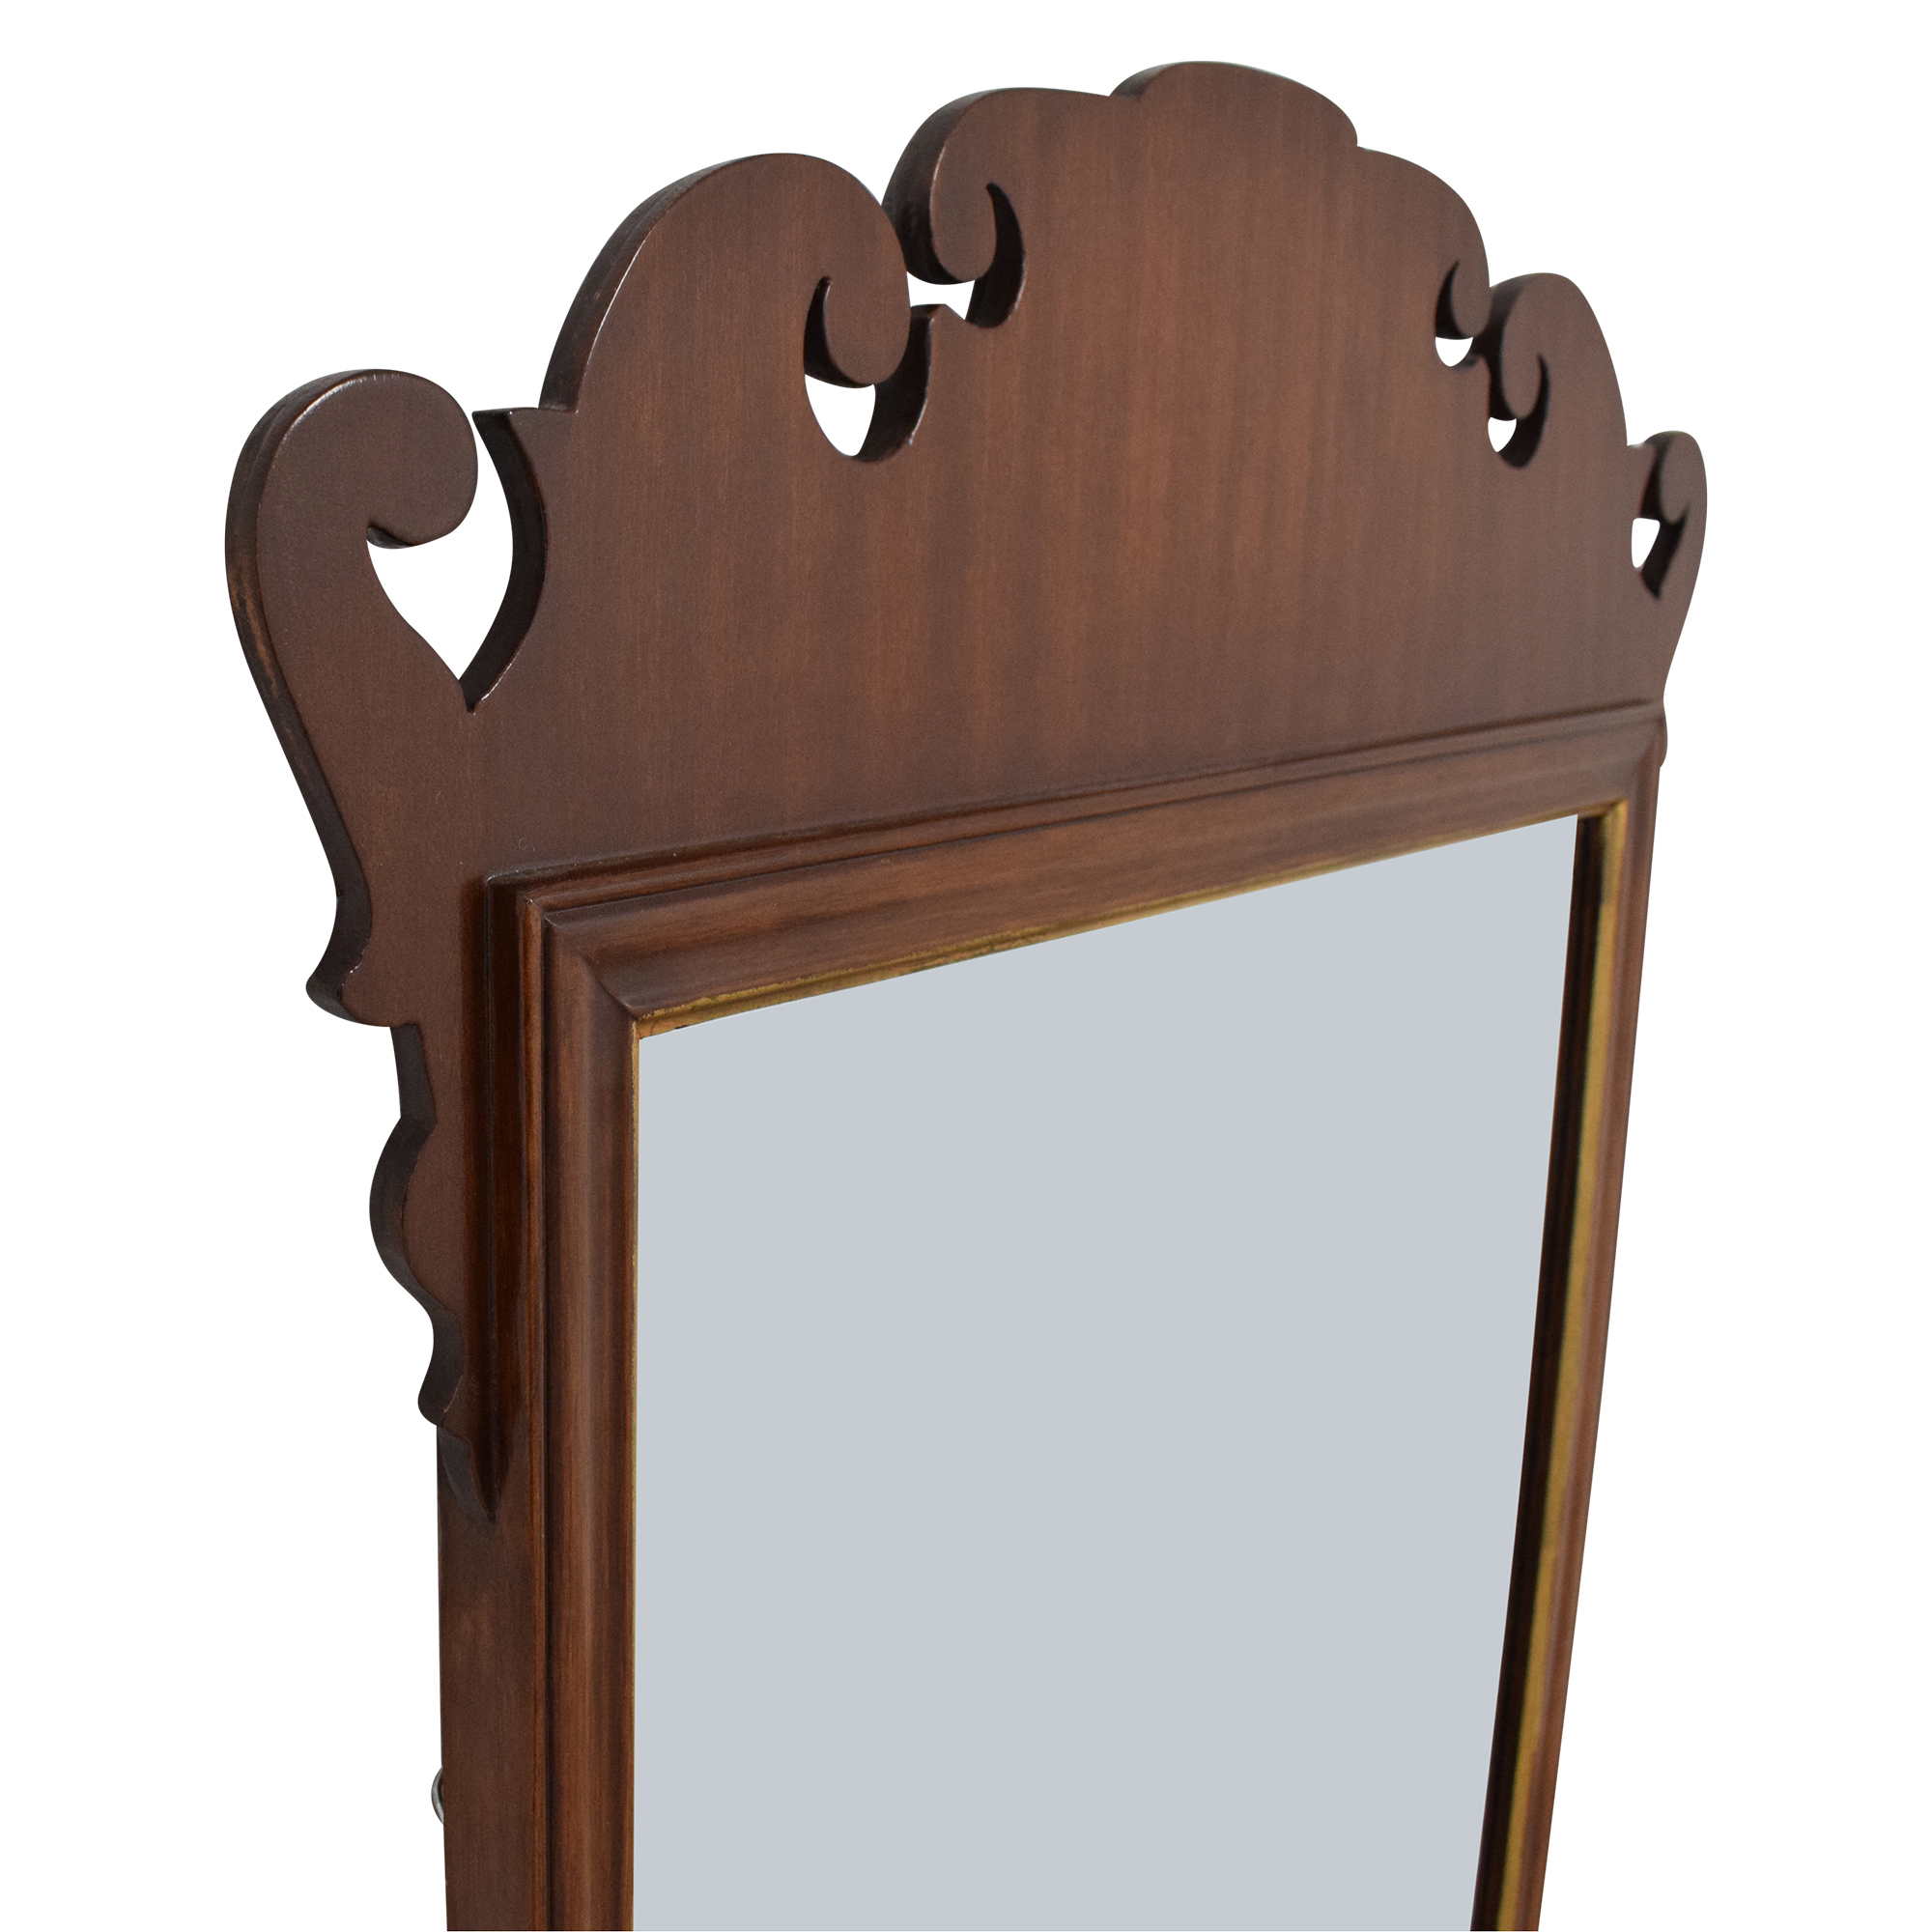 Friedman Brothers Williamsburg Chippendale Wall Mirror Friedman Brothers